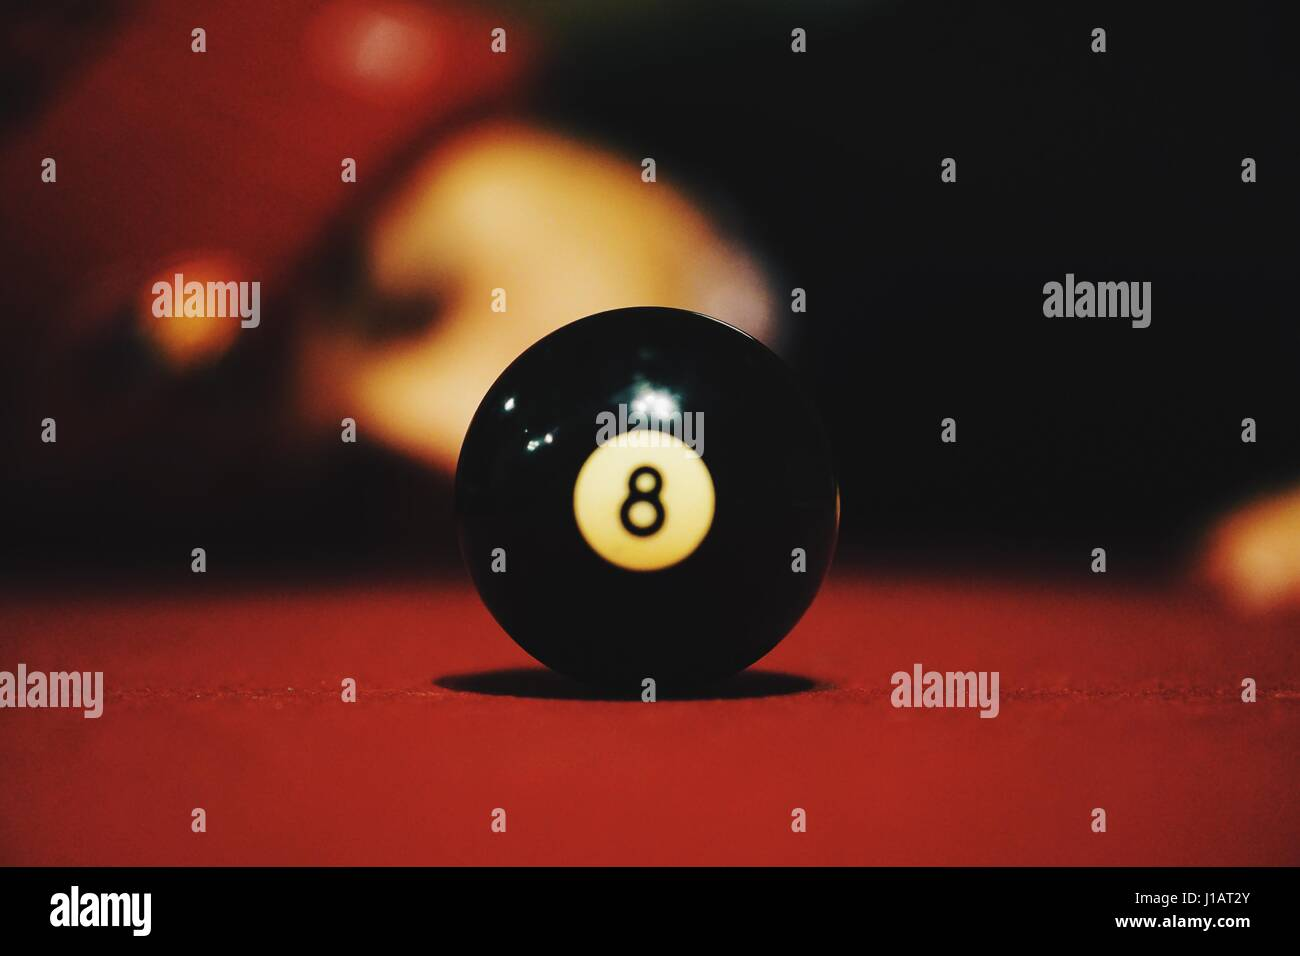 8 Balled - Stock Image